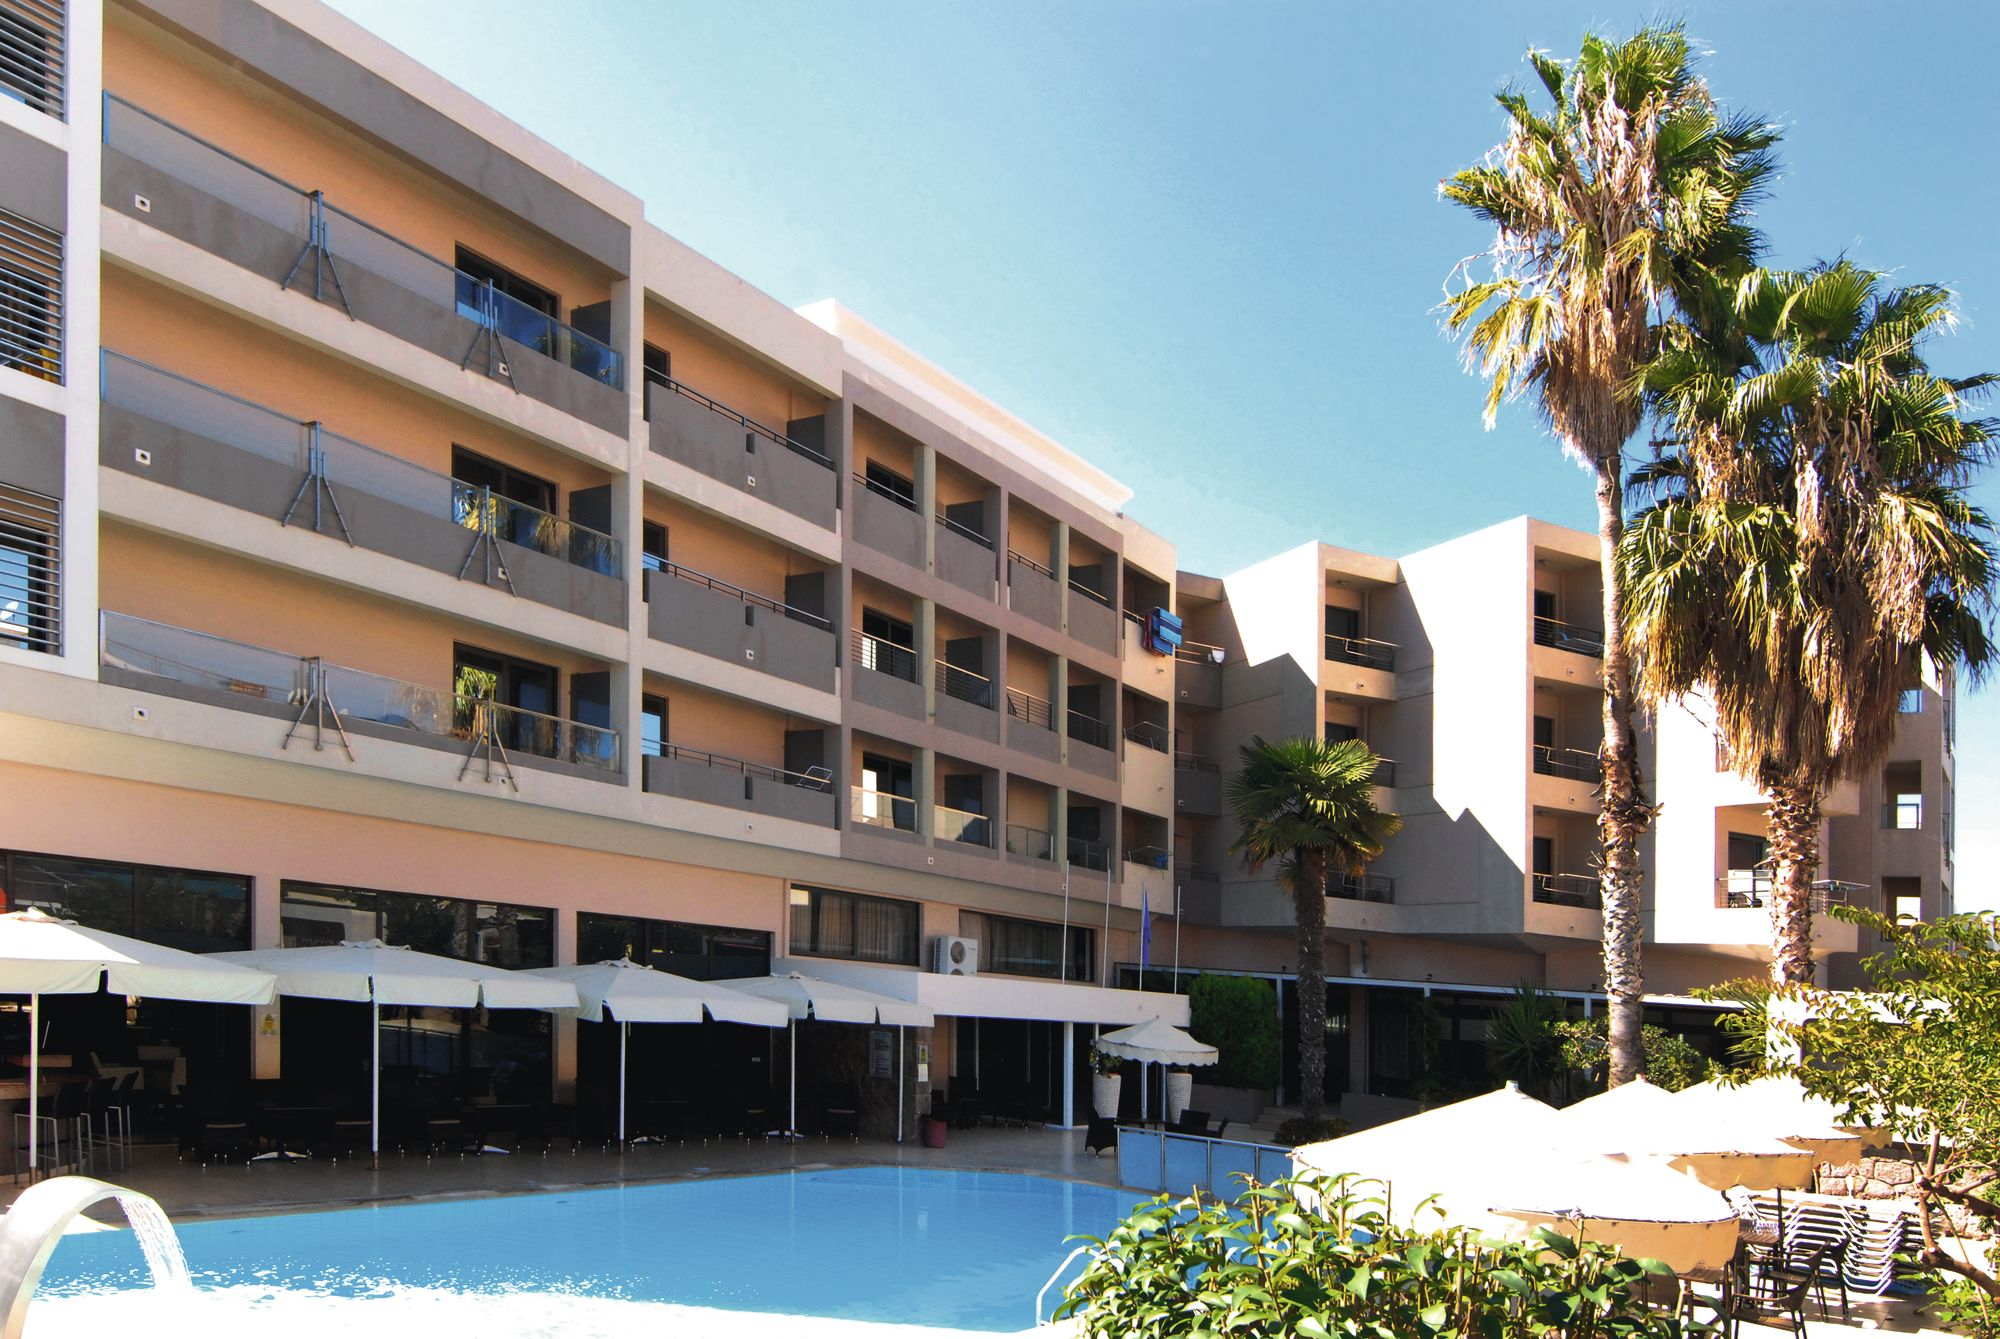 Holiday to Saint Constantin Hotel in KOS TOWN (GREECE) for 3 nights (SC) departing from birmingham on 25 Sep